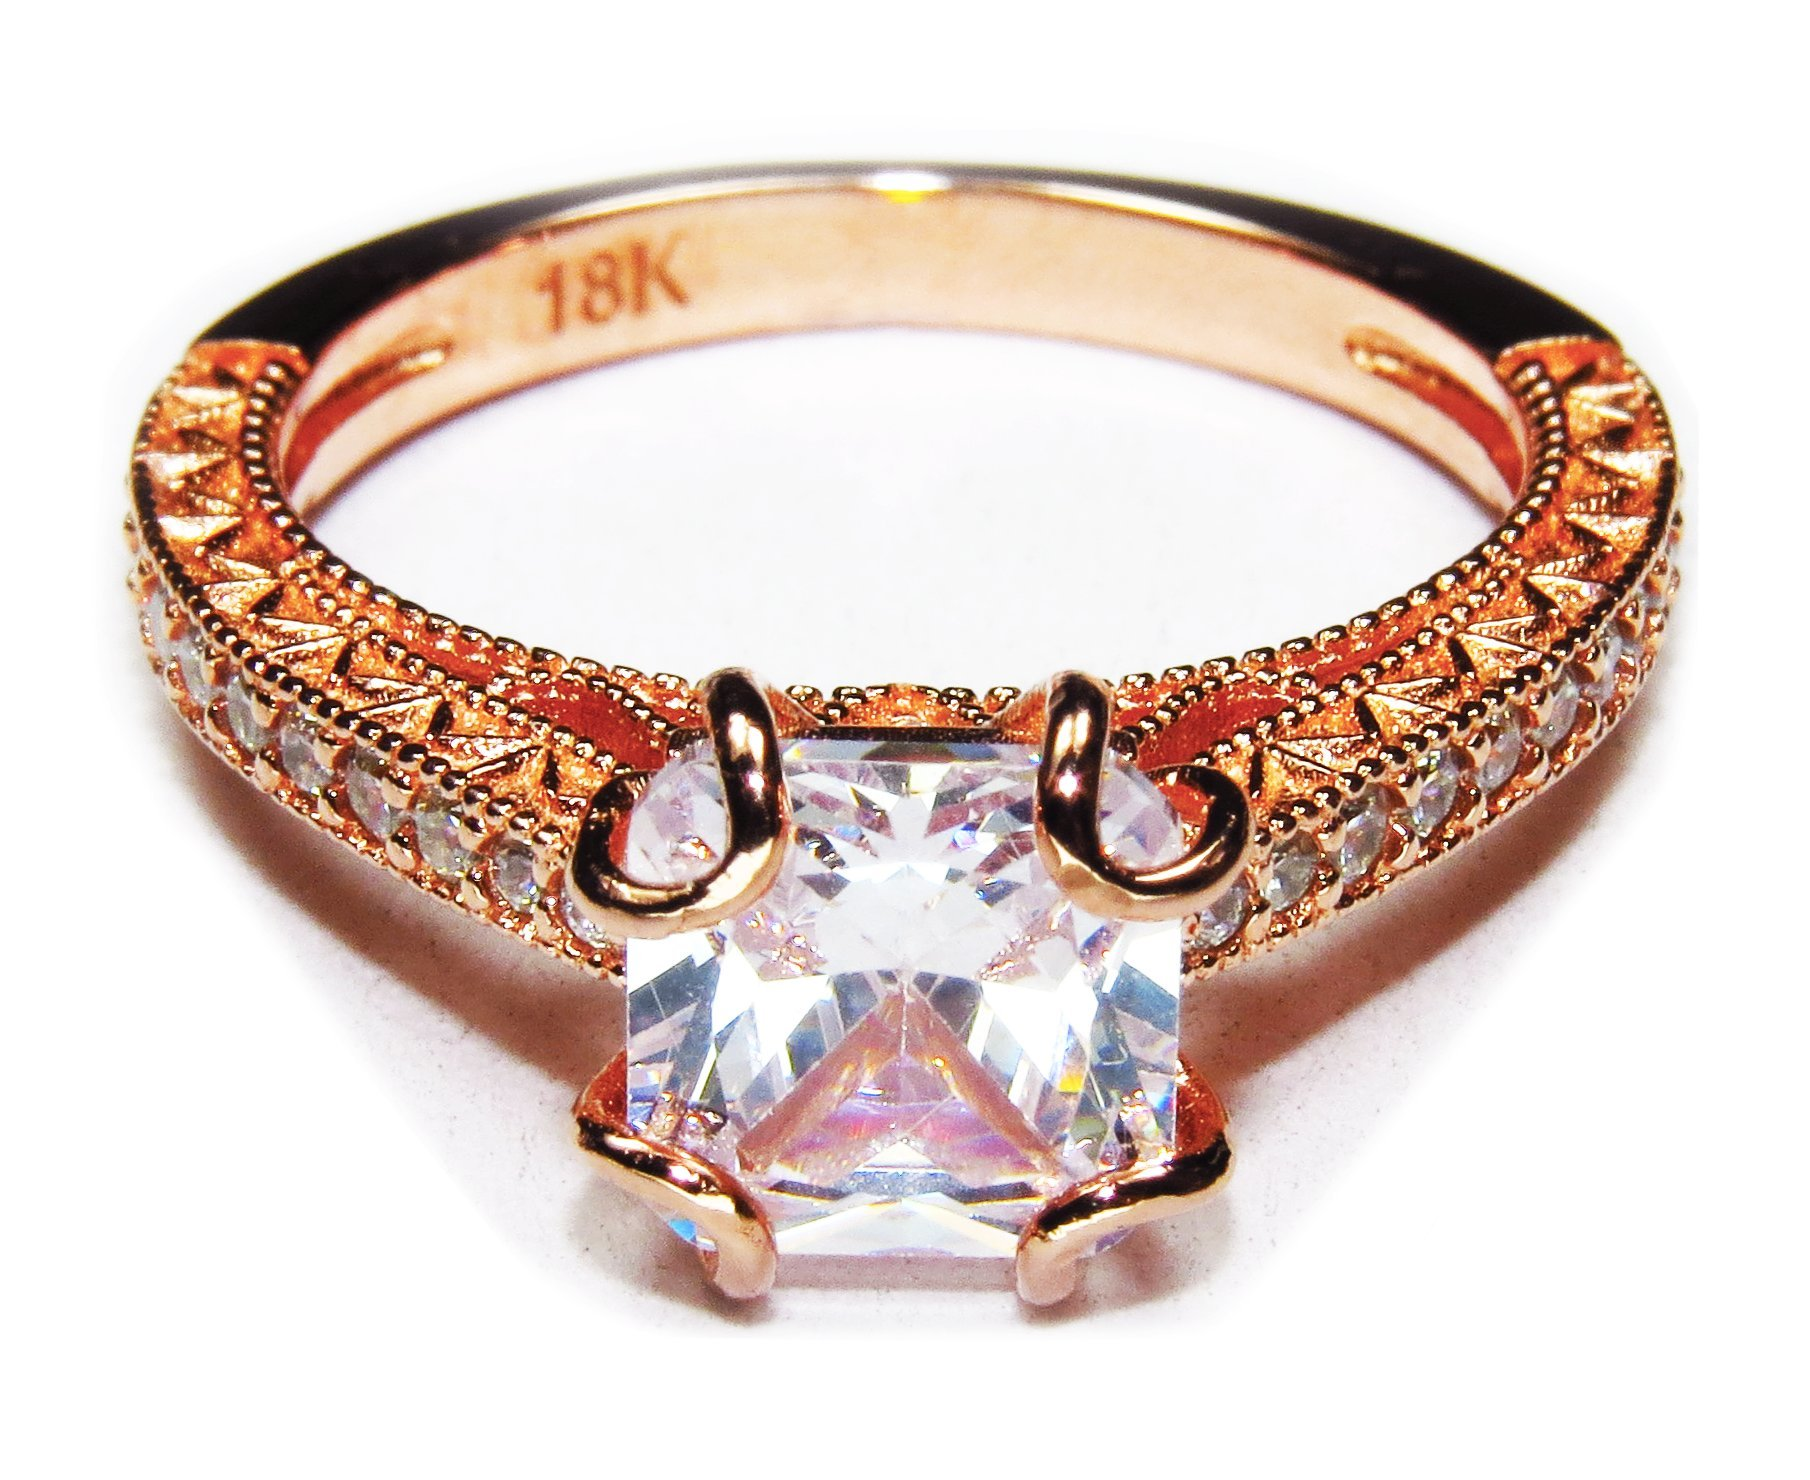 AndreAngel Women Ring Rose Gold 18K Princess Cut/Lab Diamond 6 mm Carat Cubic Zirconia AAA+/Bridal Birthday Dating Gift Anniversary Promise Engagement or Wedding Mother's Day (6)